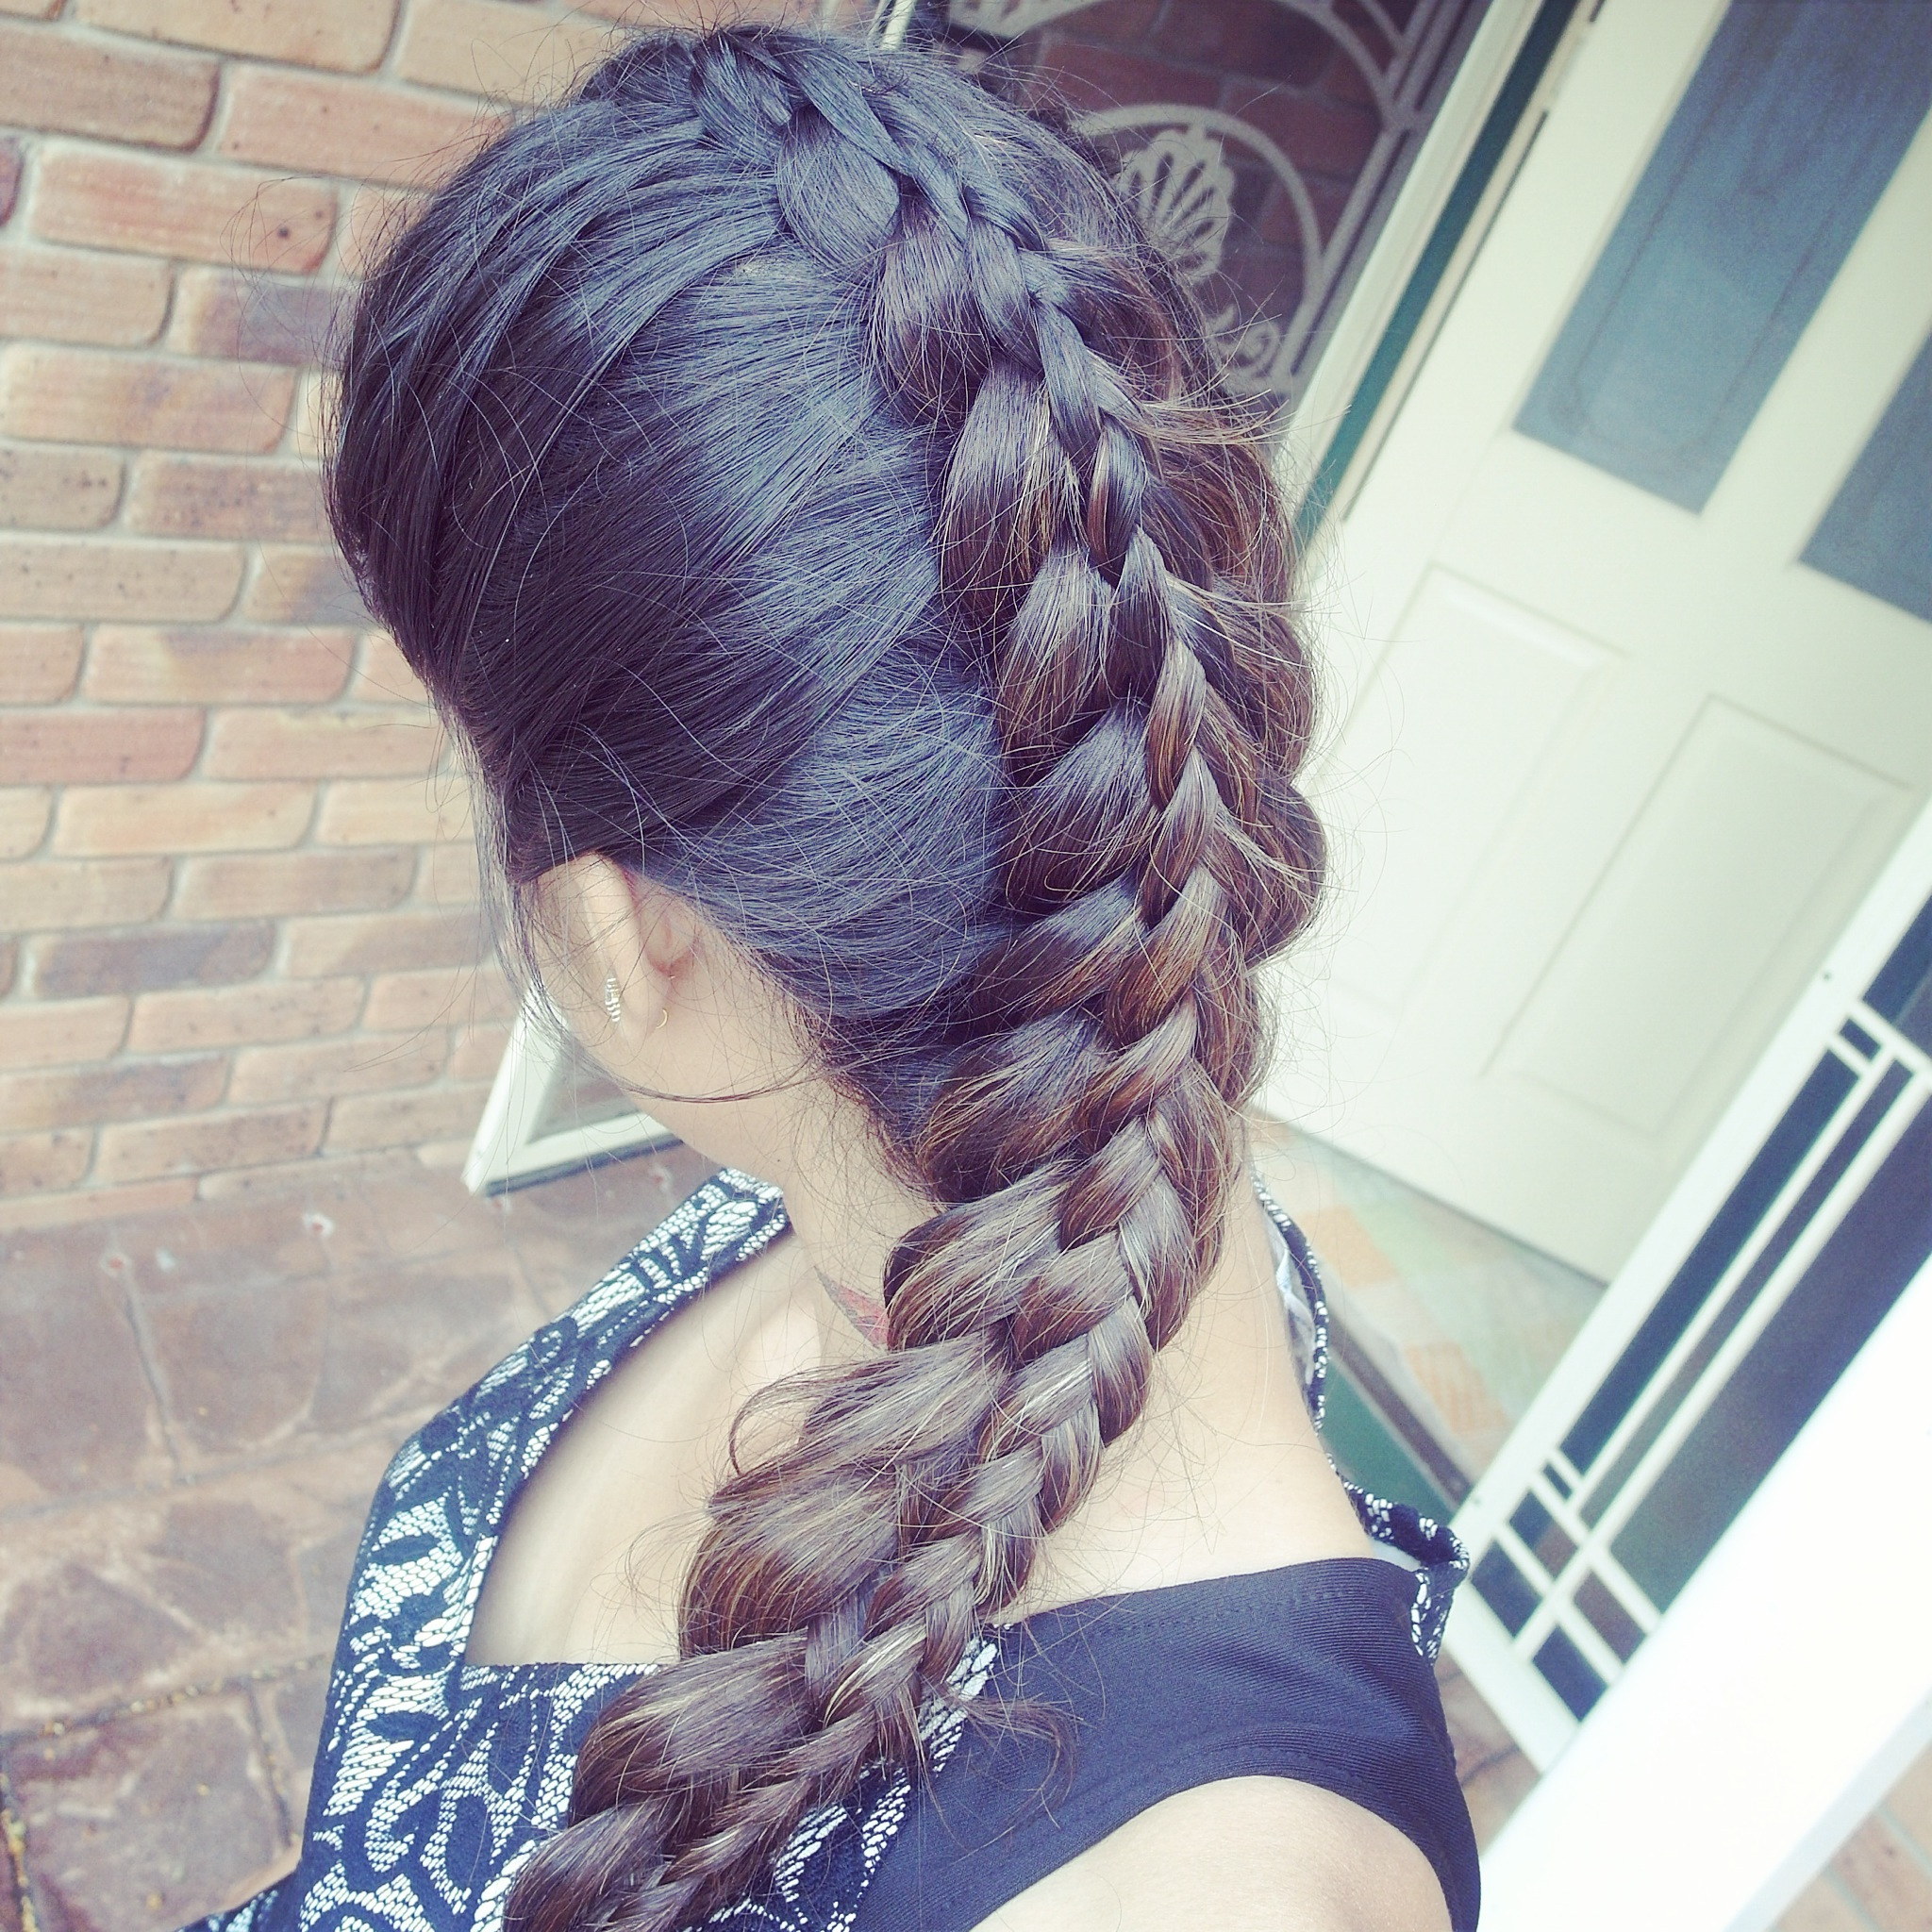 Tanvi Vayla » 3 Strand Dutch Stacked Braid Throughout Popular Three Strand Pigtails Braided Hairstyles (Gallery 19 of 20)